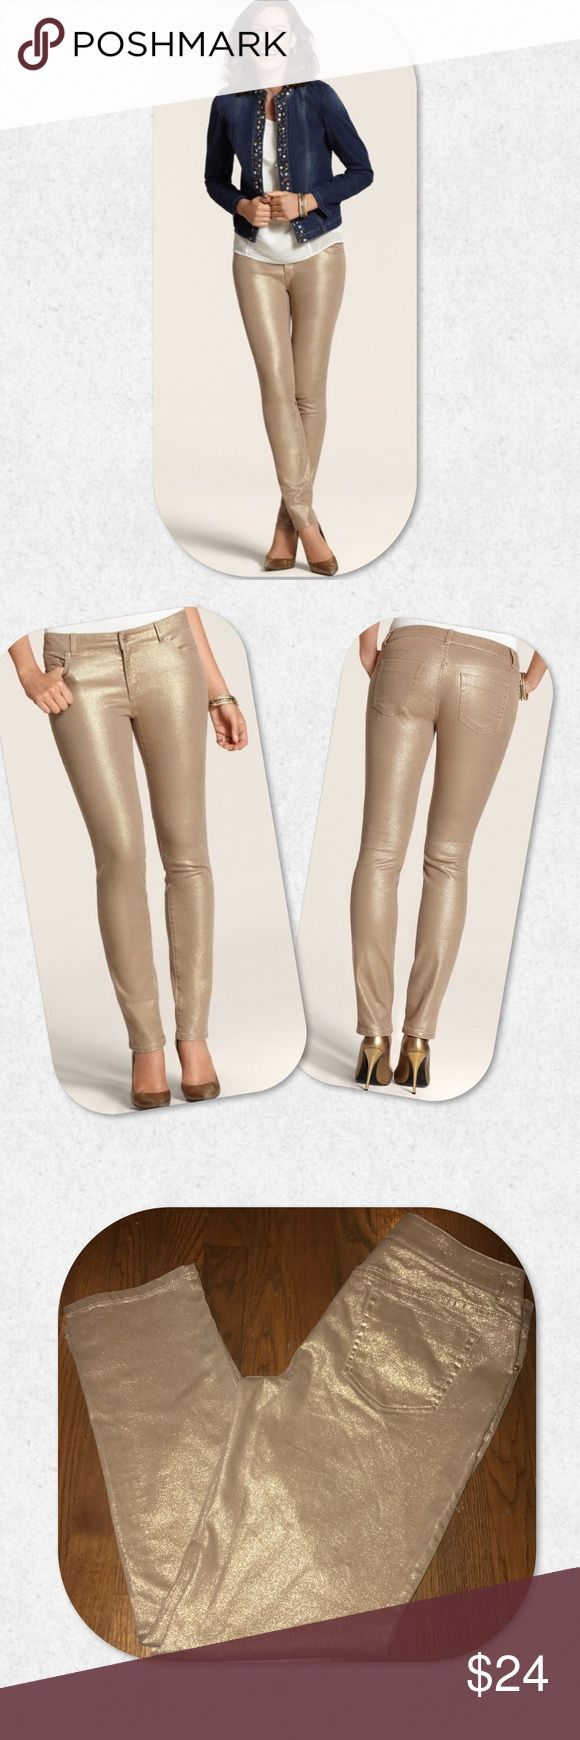 "Chicos Platinum Metallic Jeans Chicos Size 1. All measurements are approximate & lay flat- Waist: 18""; Hip: 18""; Outseam: 34""; Inseam: 28""; Leg opening: 7 3/4""; Rise: 10"". NWT.    Sits just below the waist, for a modern fit with maximum comfort.  Crafted with a hint of stretch for a smooth fit.   98% cotton, 2% spandex.  Machine wash. Chico's Jeans"